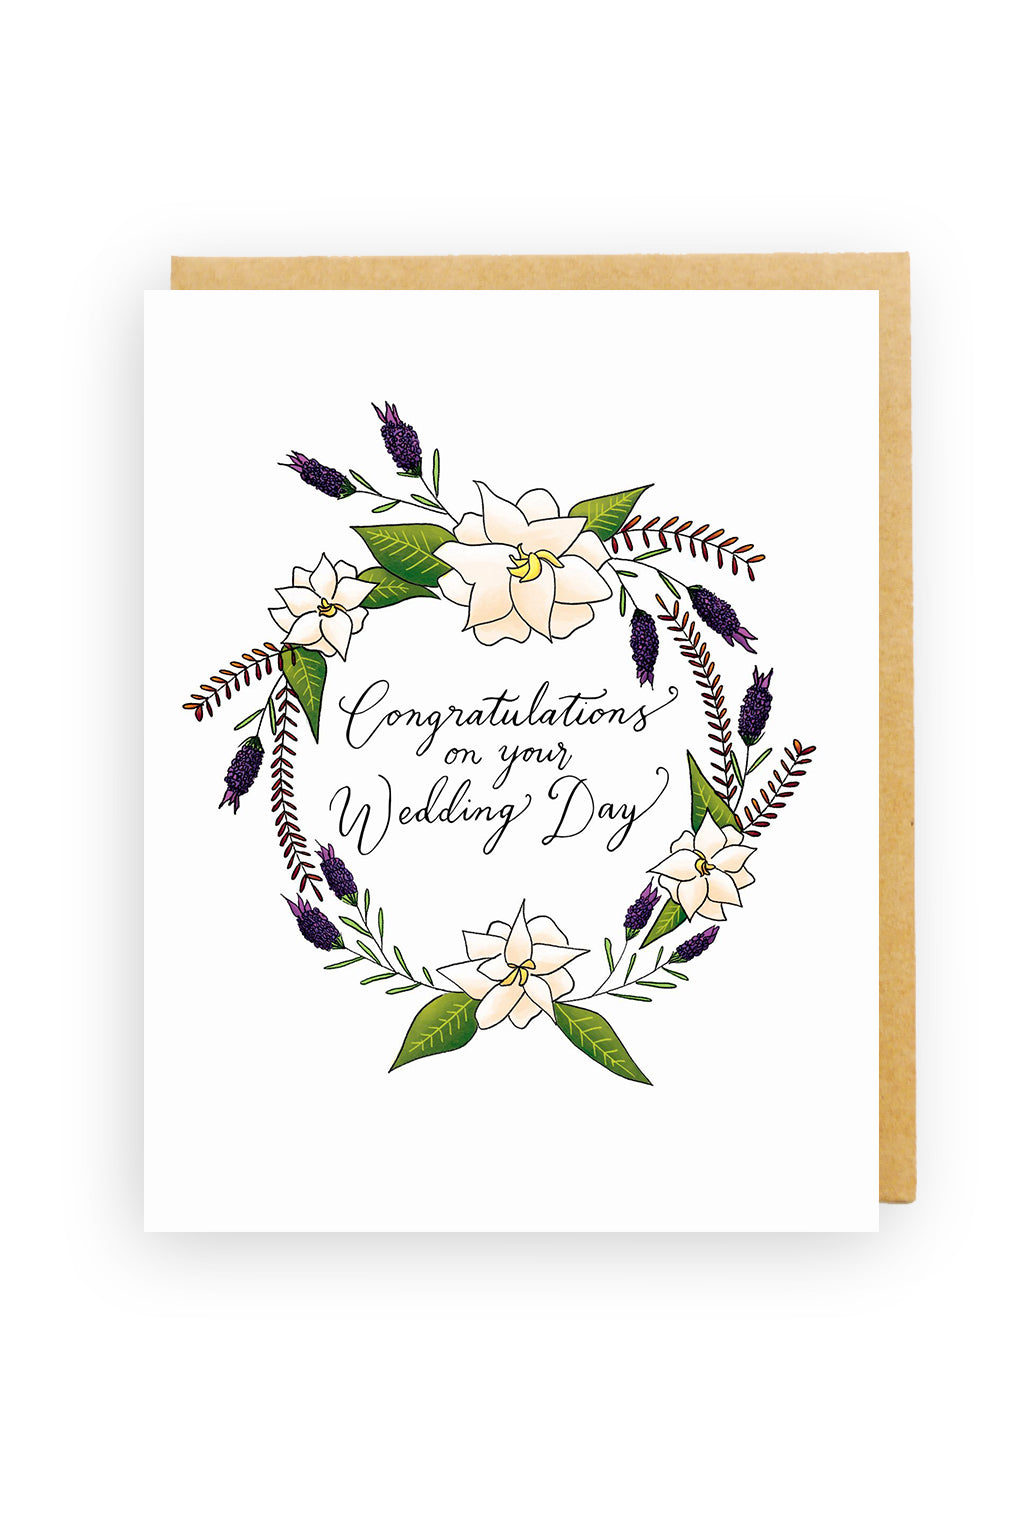 Squirrel Design Studio-White Gardenia Wreath - Wedding Card-Mott and Mulberry